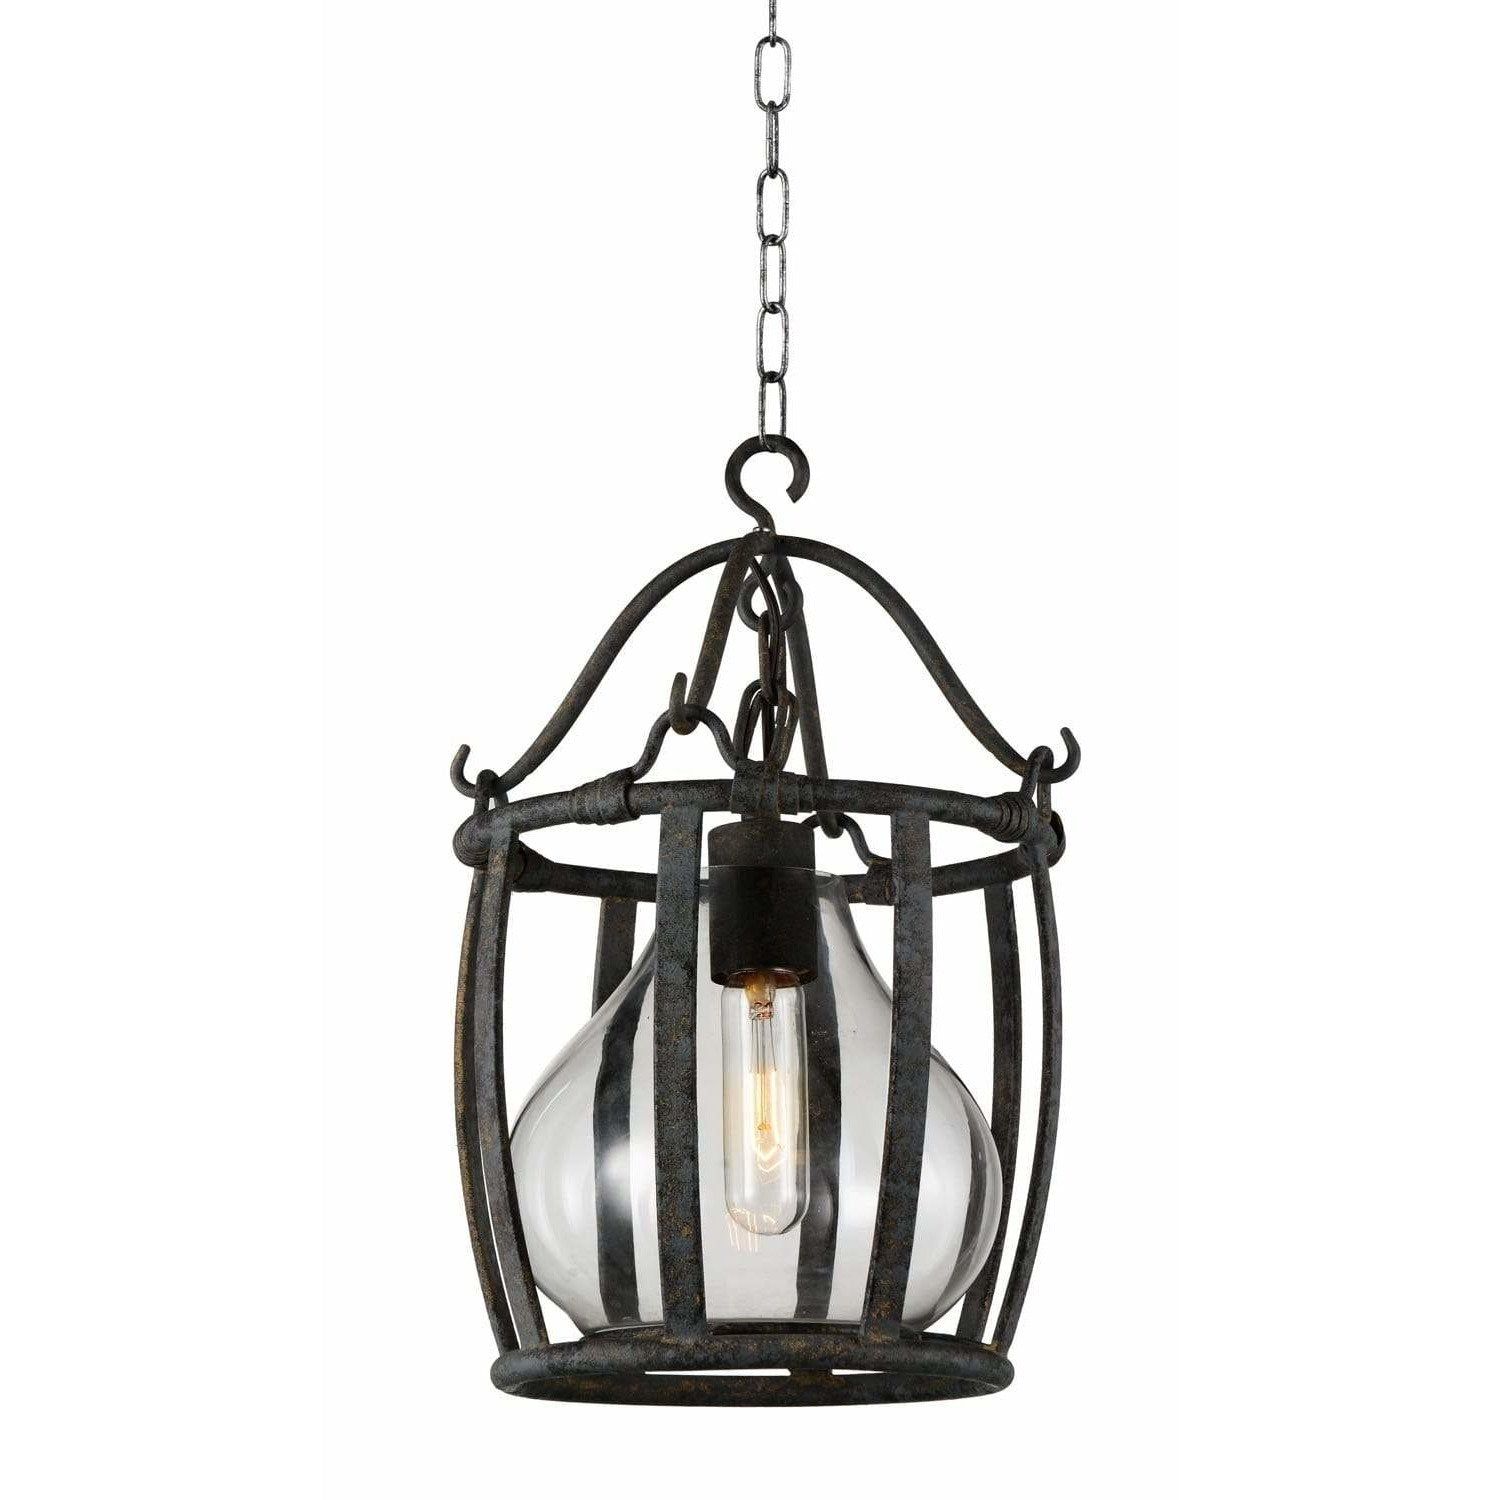 CWI Lighting Pendants Antique Black Imperial 1 Light Down Pendant with Antique Black finish by CWI Lighting 9925P12-1-216